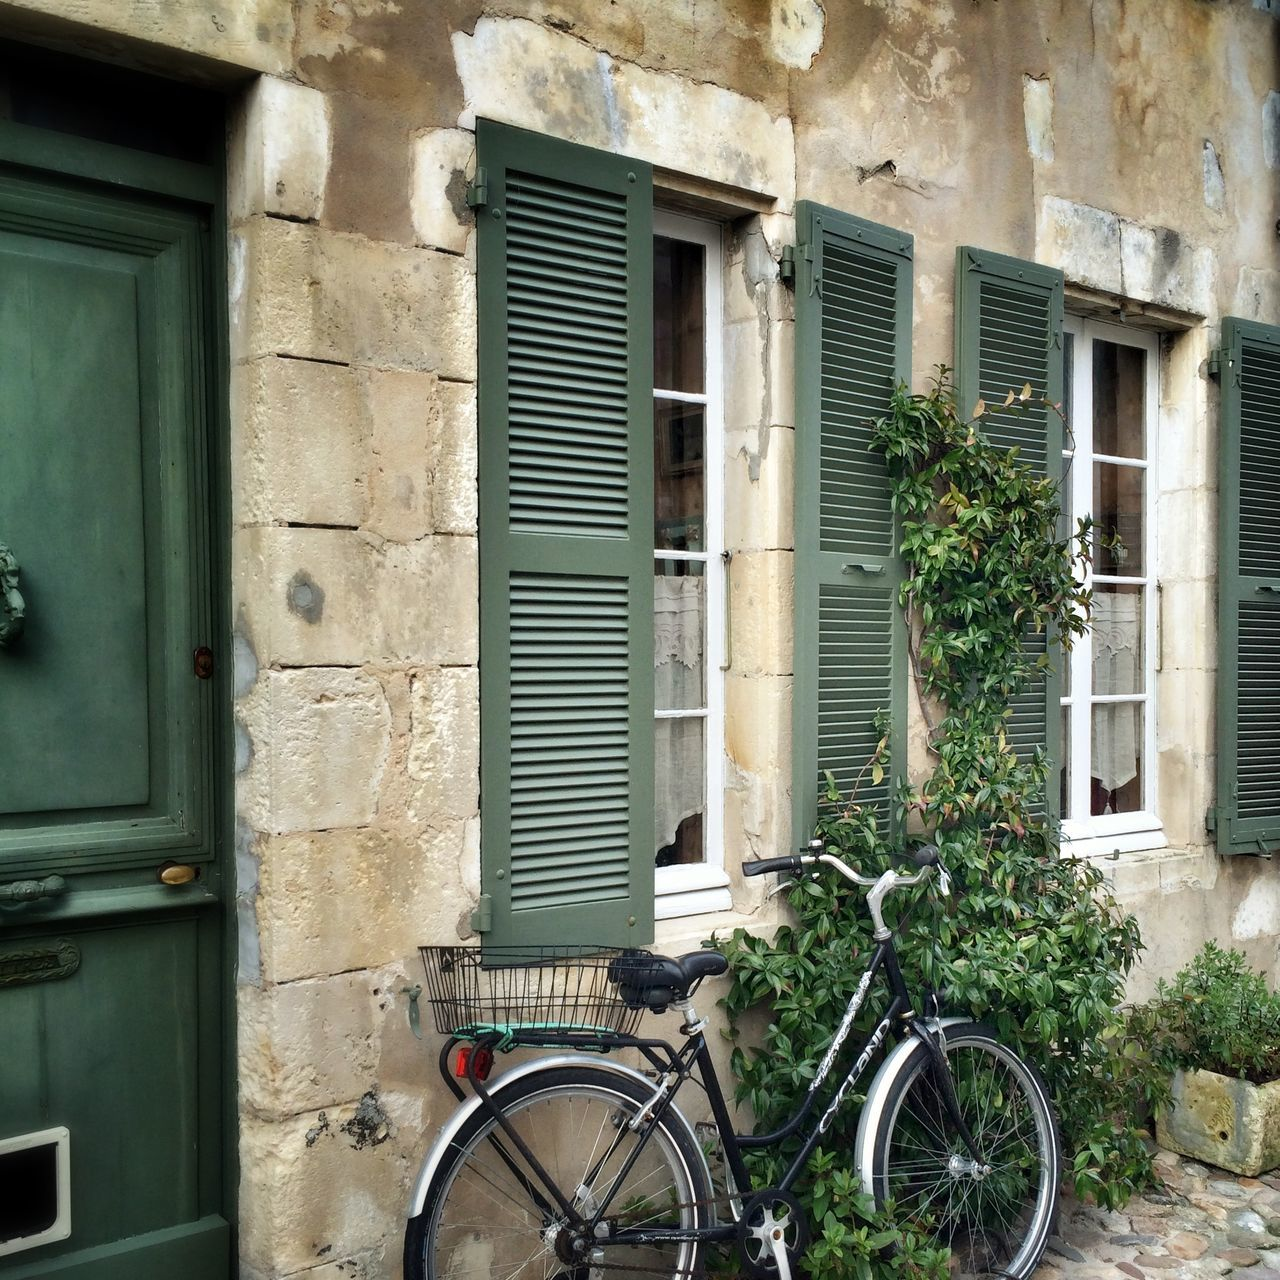 architecture, window, building exterior, old, built structure, no people, transportation, day, mode of transport, outdoors